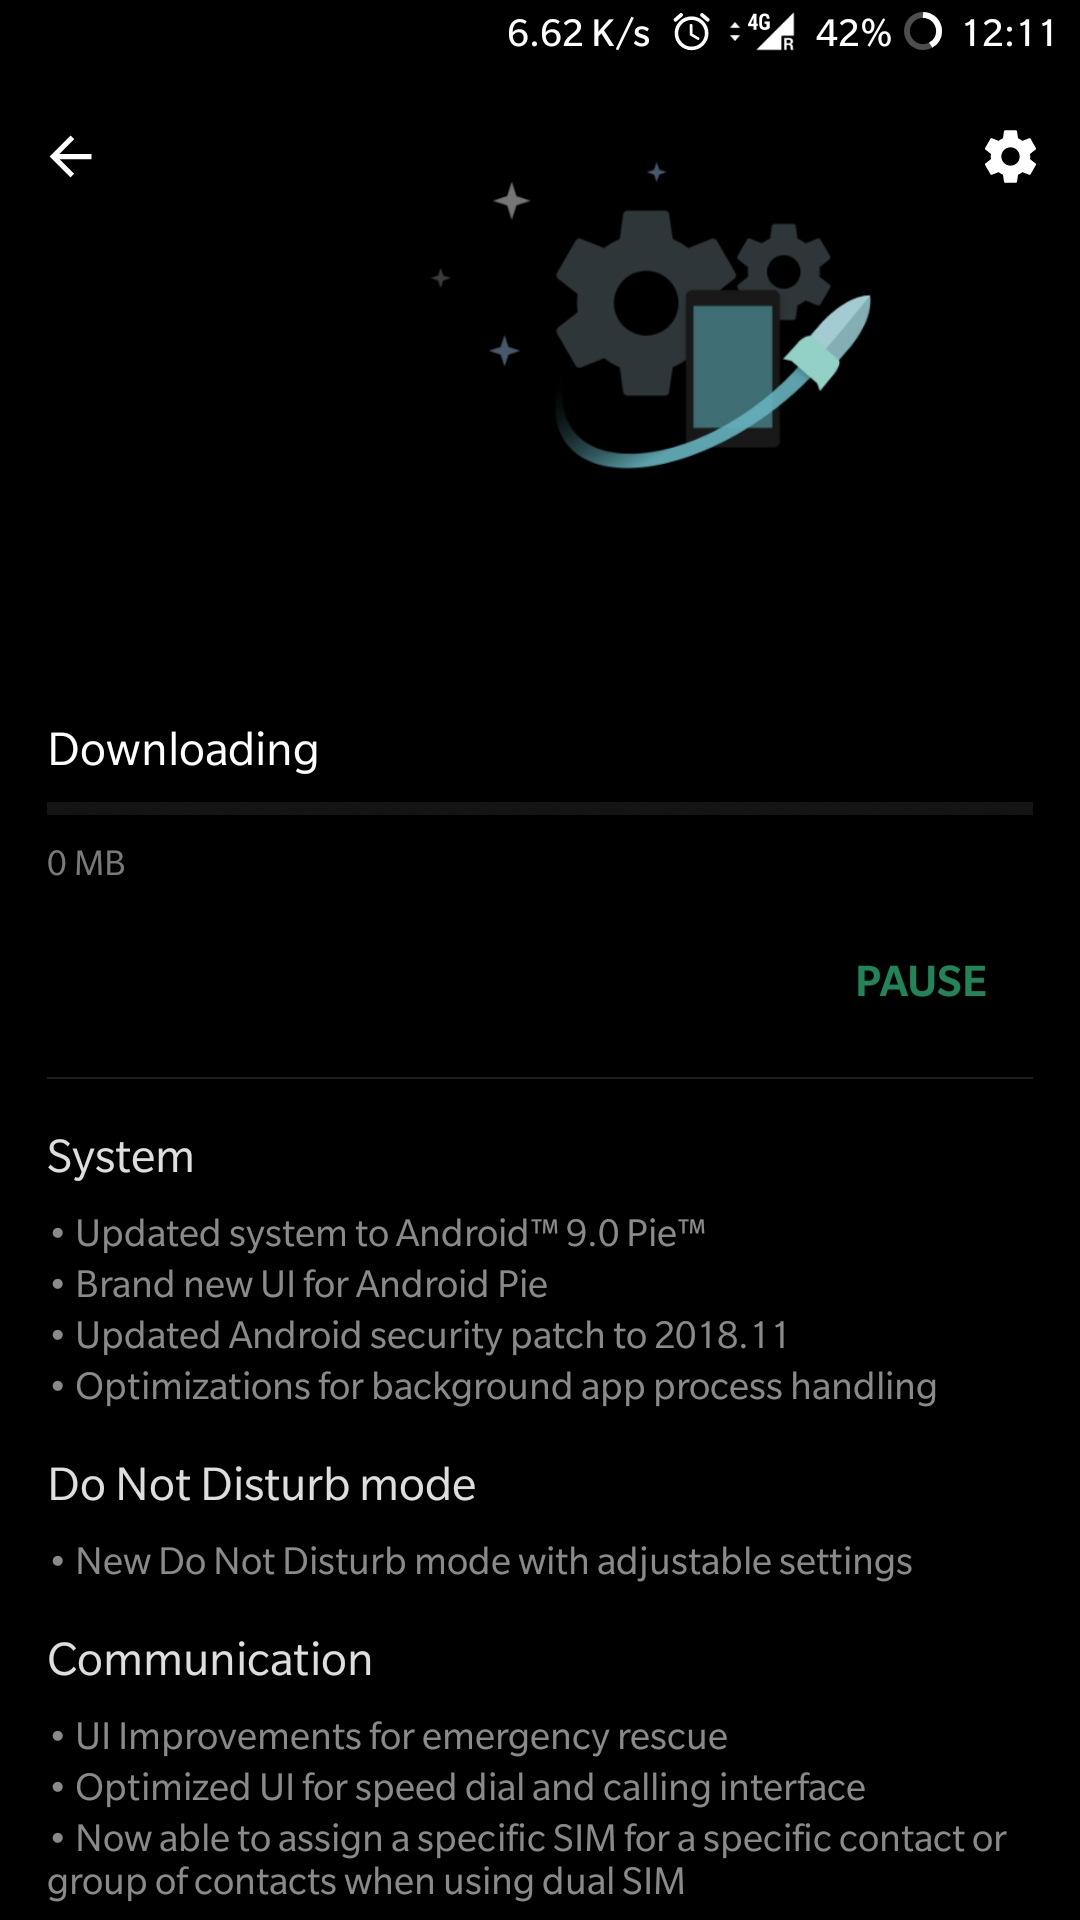 OnePlus 5, OnePlus 5T Get Android Pie With Latest OxygenOS Open Beta